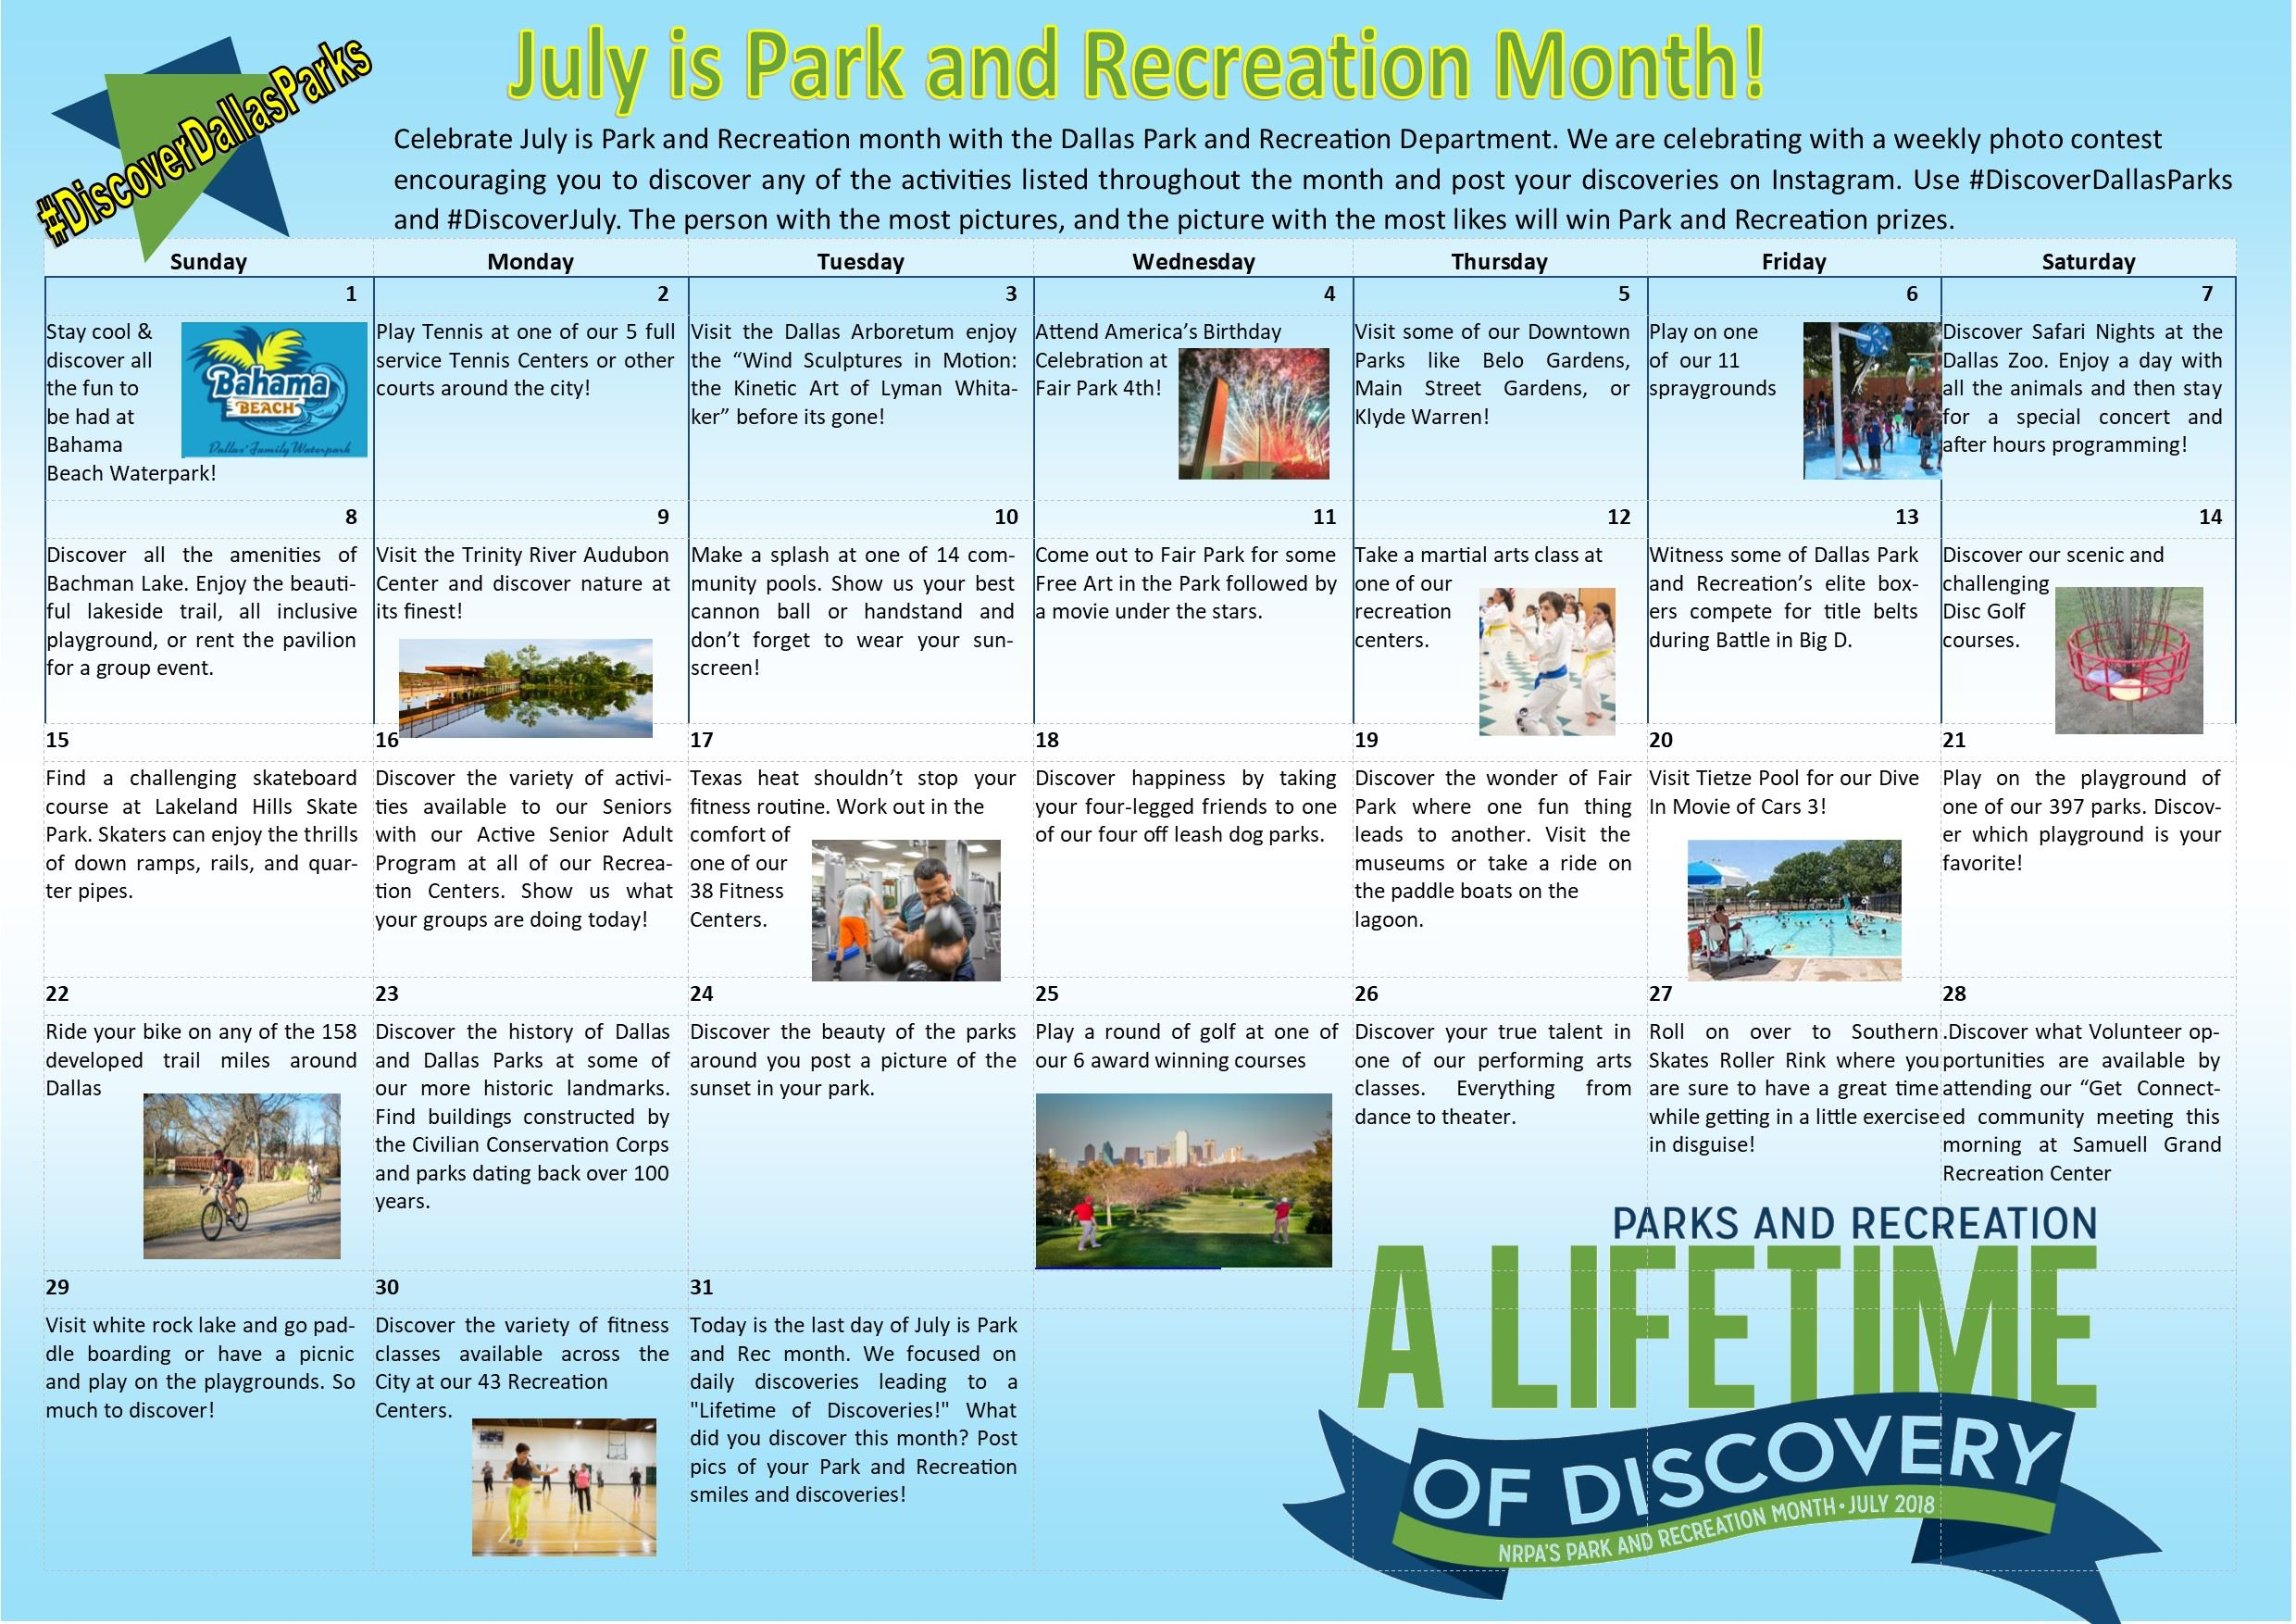 July is Park and Rec Month 2018